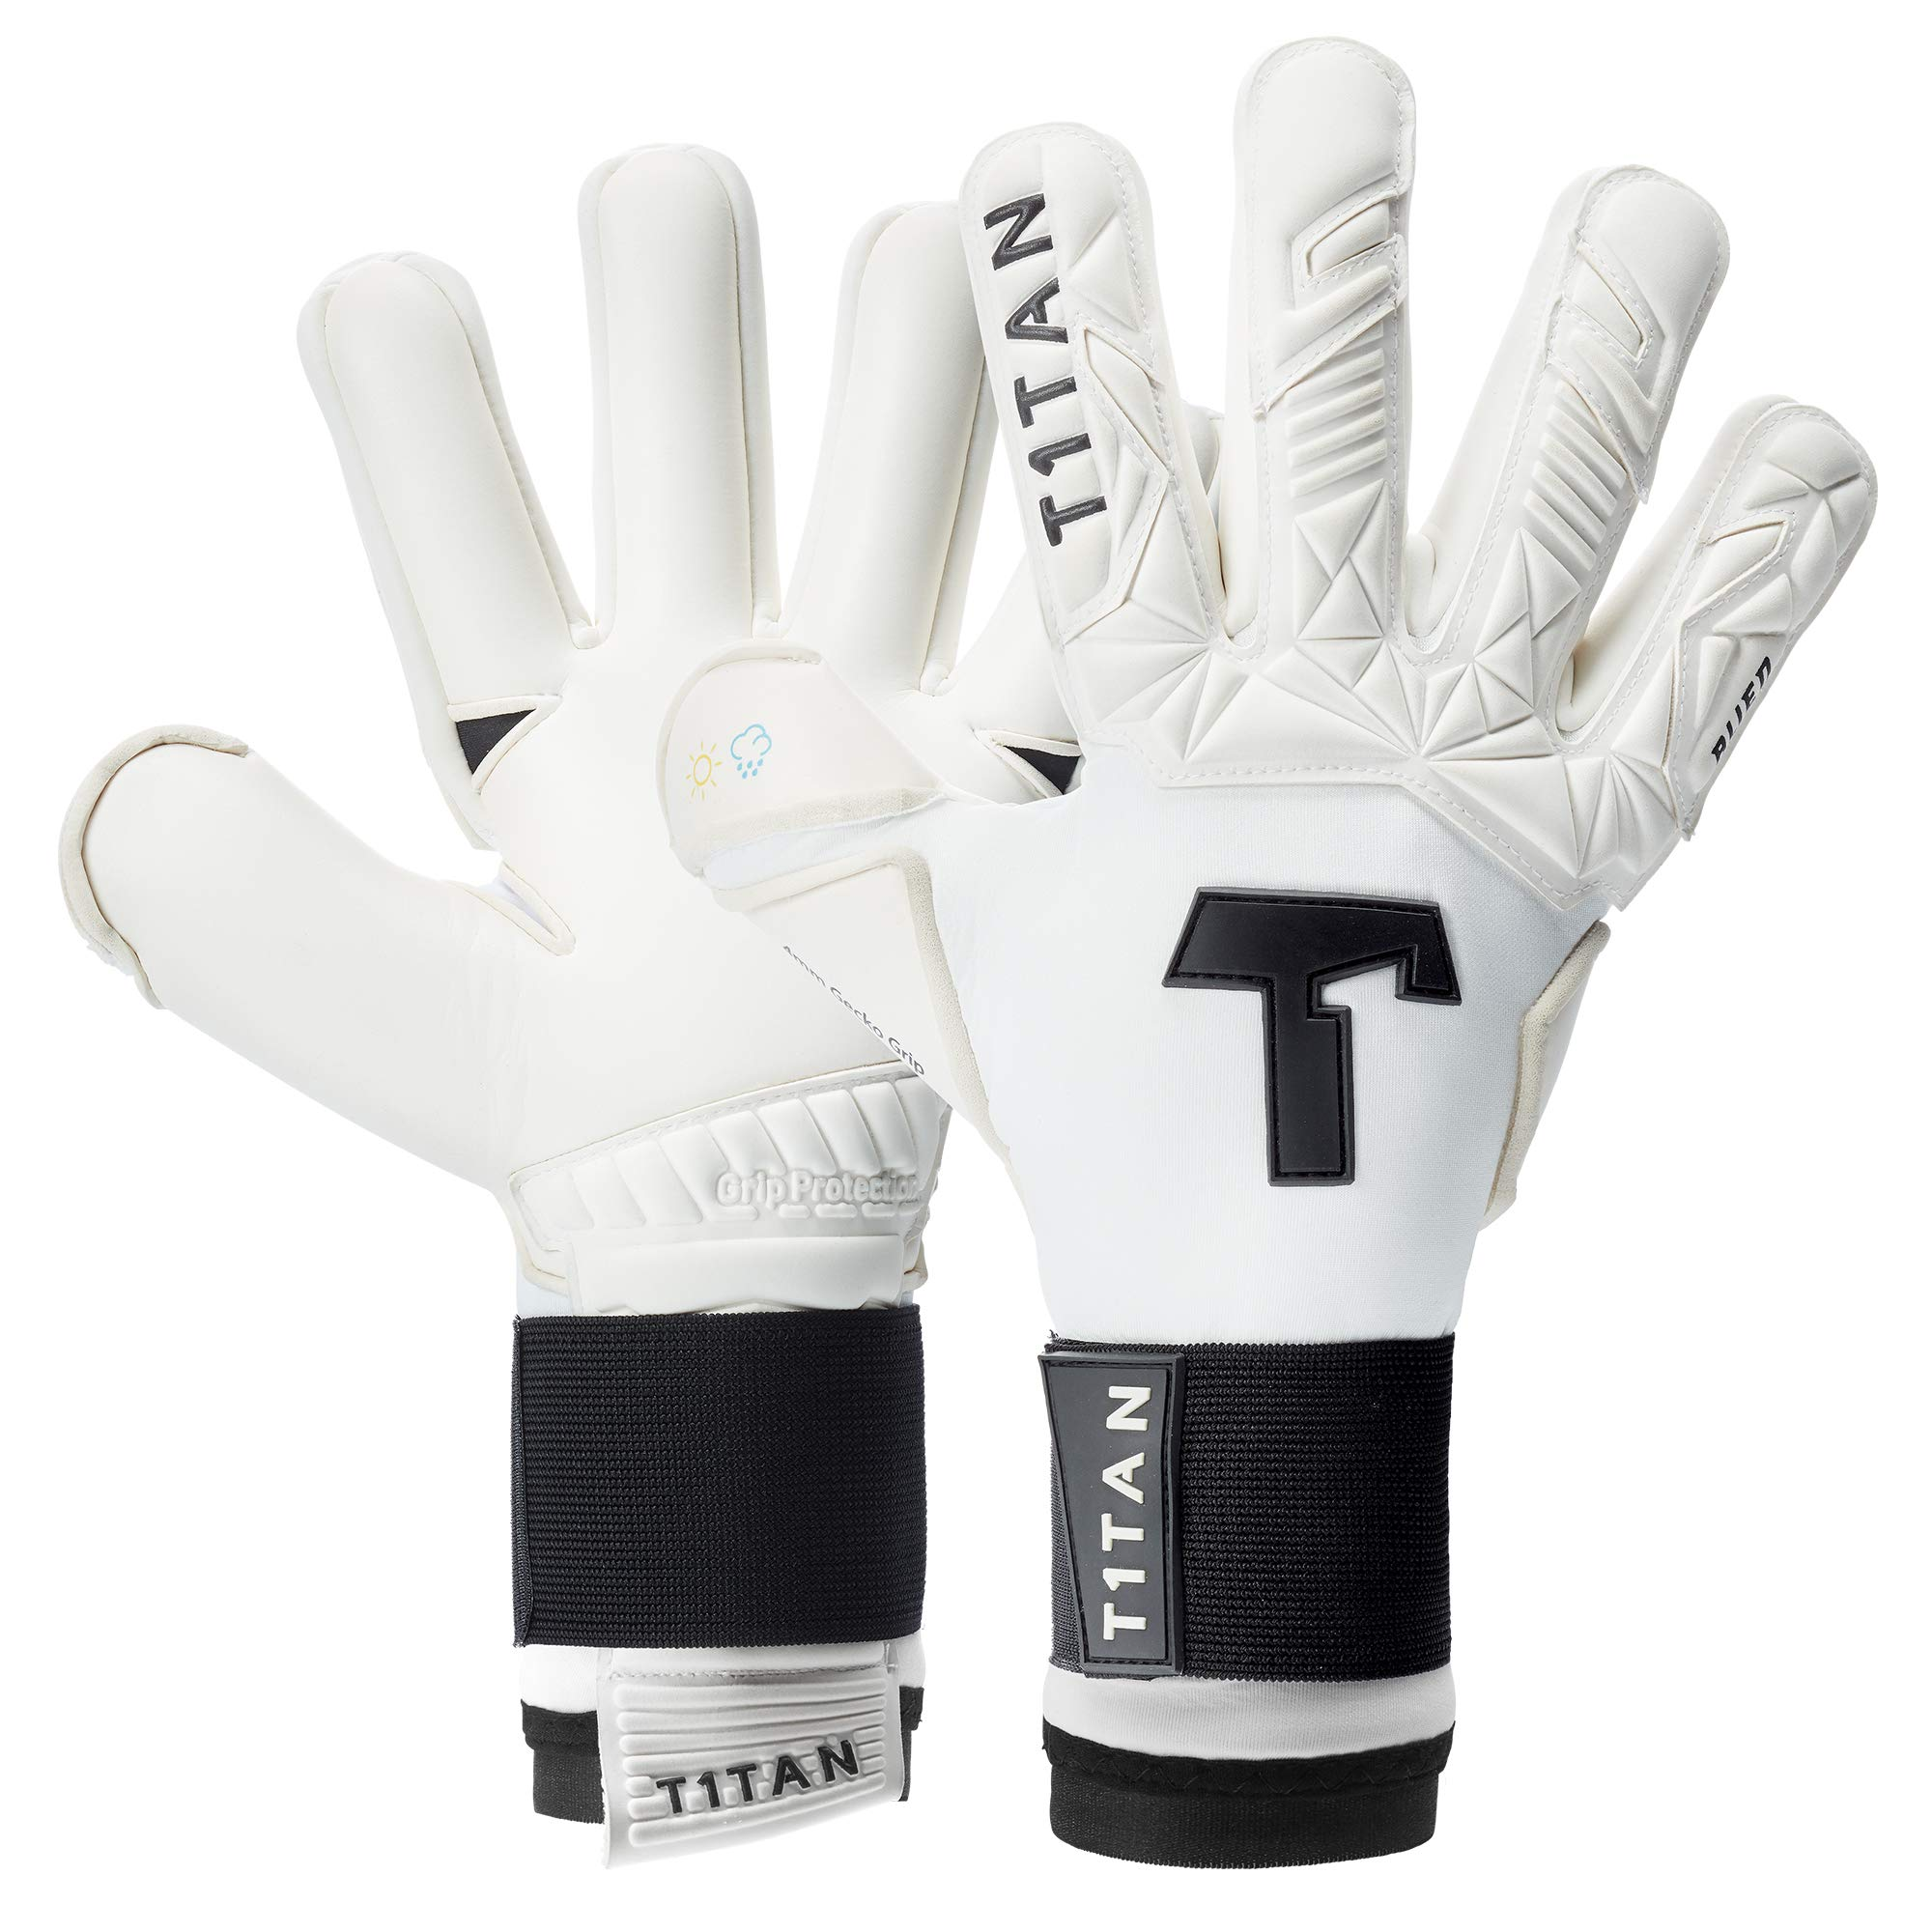 goalkeeper gloves children various sizes and colors T1TAN goalie gloves for kids negative cut soccer gloves and 4mm pro grip